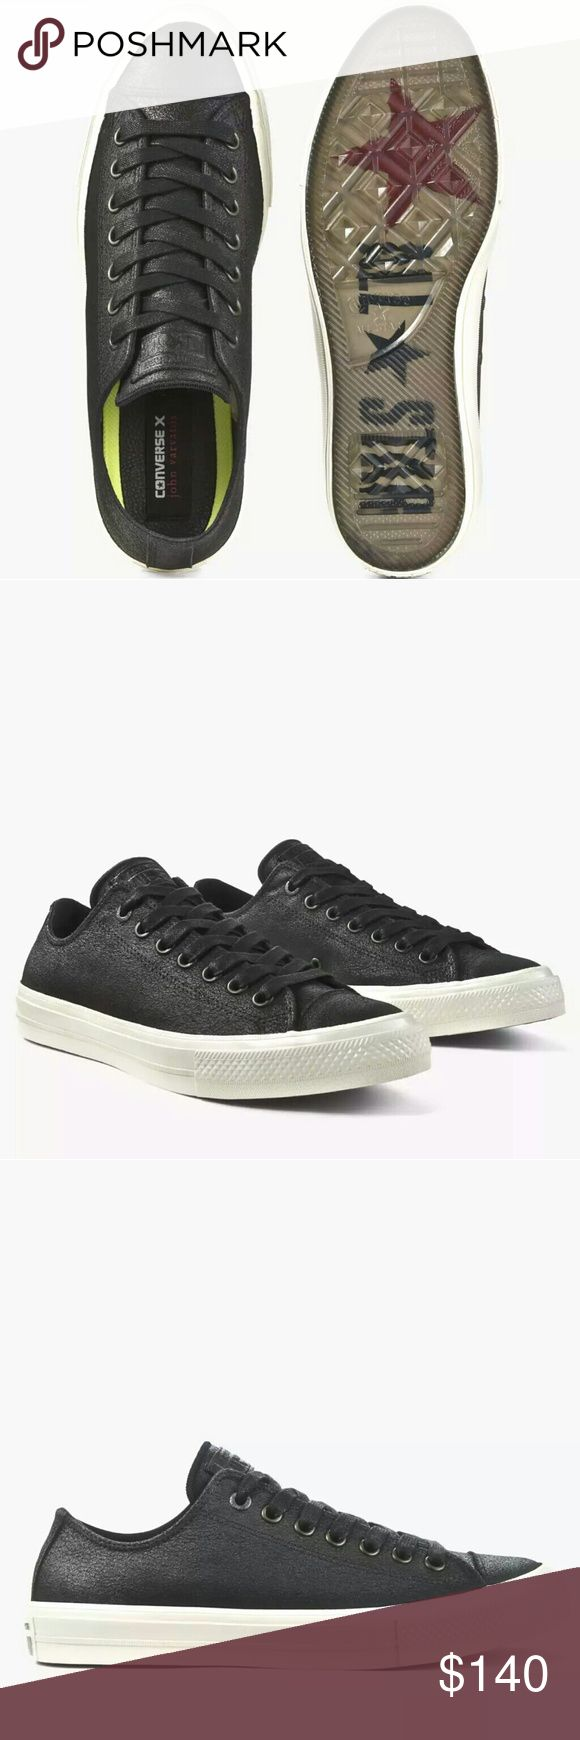 NWT Converse John Varvatos Coated Leather Black NWT! Rare! Sold in stores!  - Converse Chuck Taylor John Varvatos Coated Leather Low Top w/ Lunarlon - Converse Chuck Taylor All Star, Chuck II, Chuck 2 Converse Shoes Sneakers